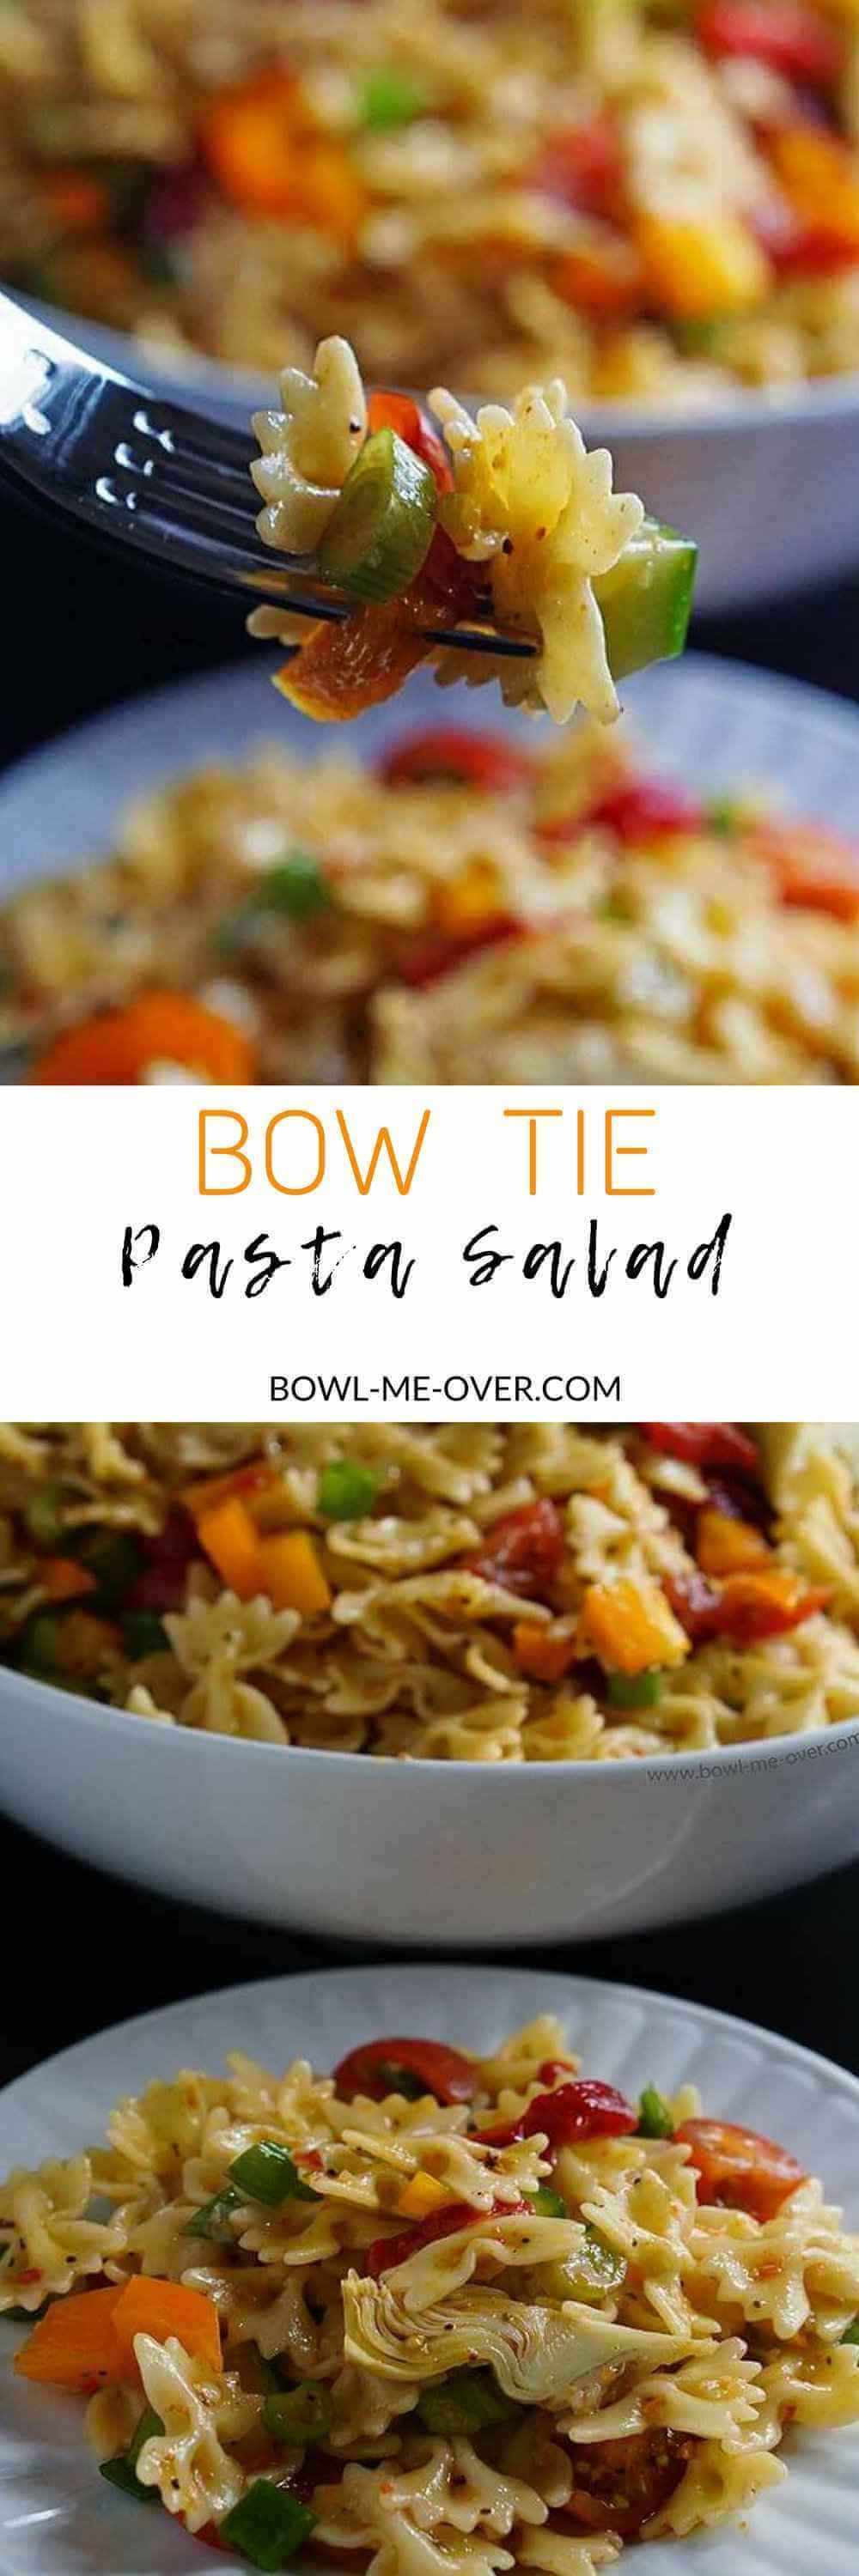 A close up of a fork filled with salad. This blog has Bow Tie Pasta salad Recipes perfect for summertime or family meals.